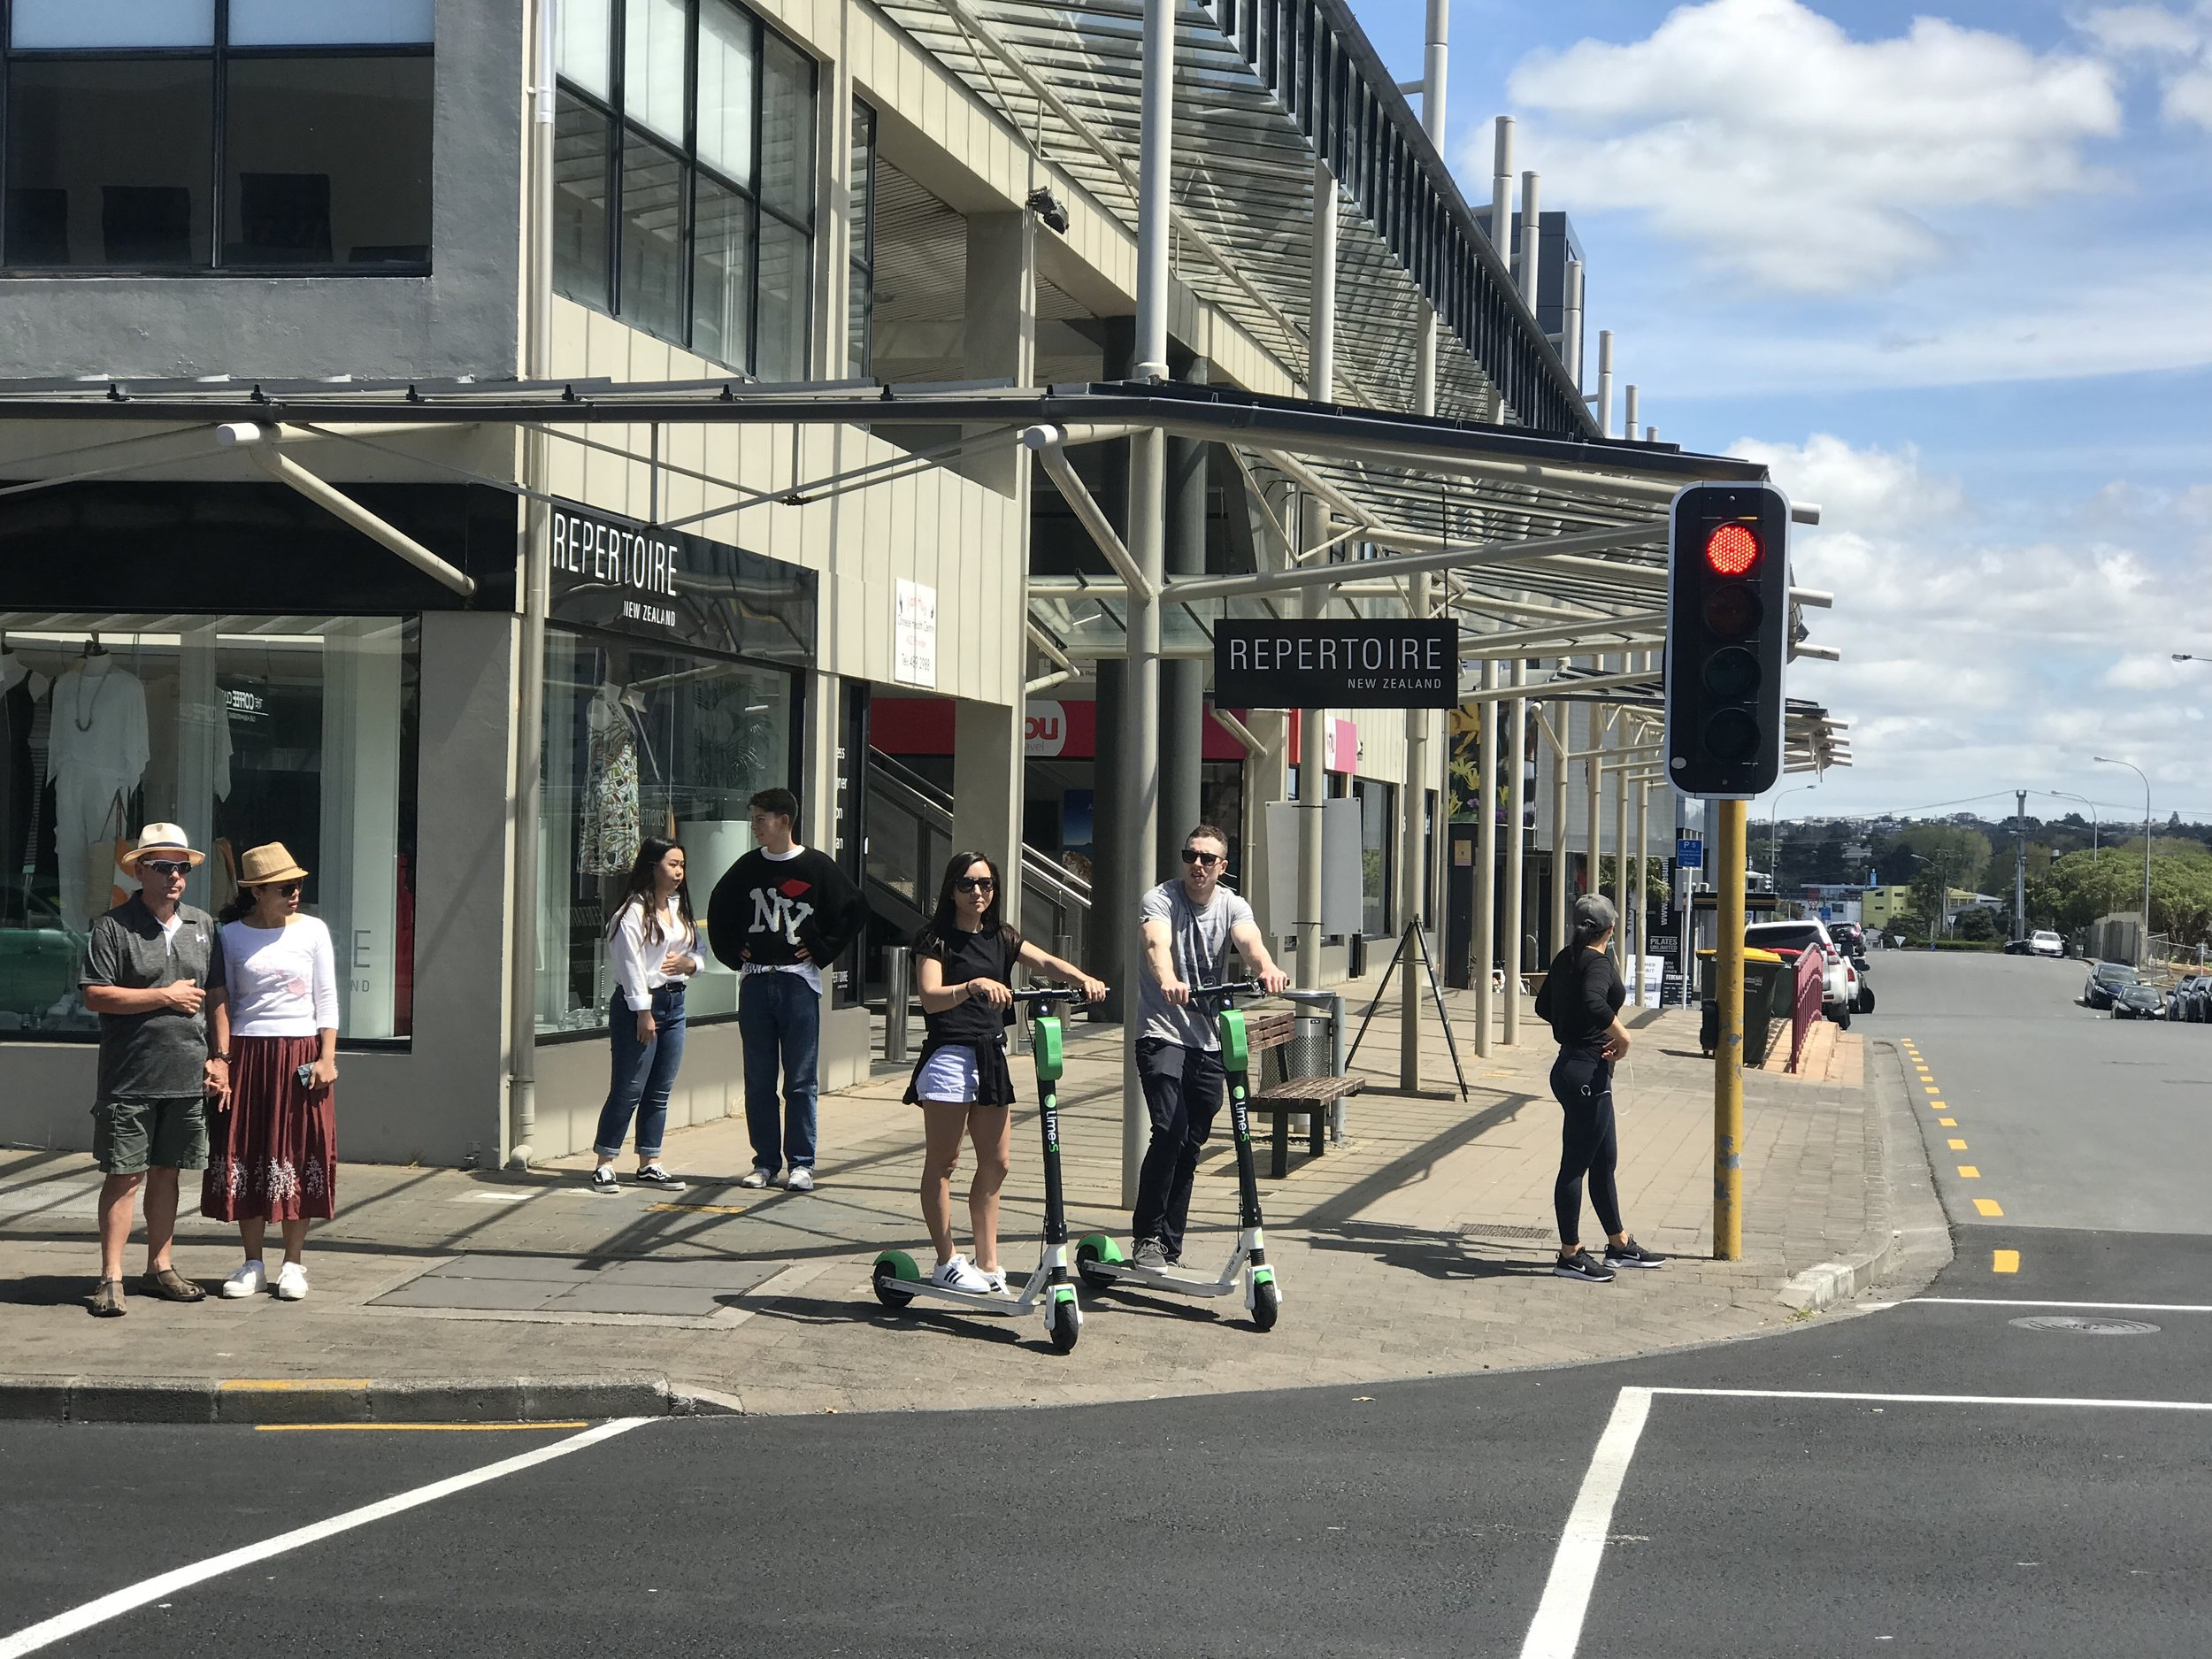 Aucklanders appear to have embraced the scooter scheme quickly.